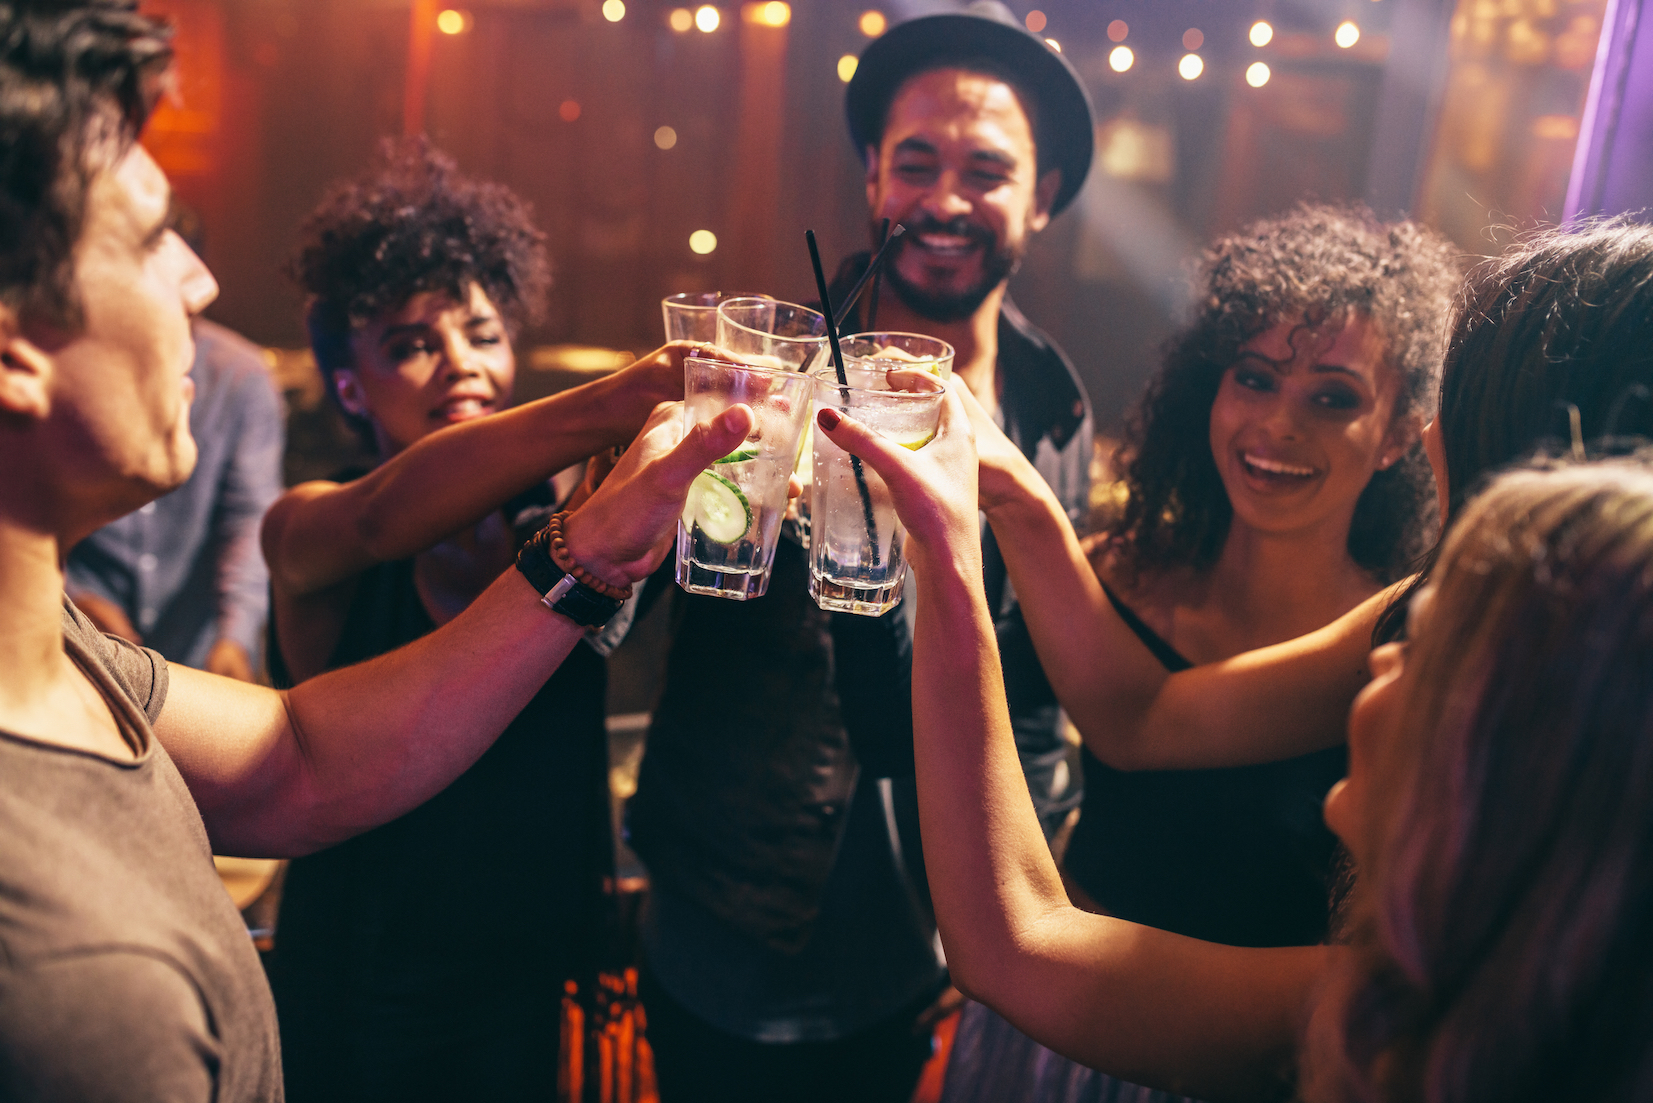 A new study shows that regularly drinking more than five or six alcoholic beverages a week reduces life expectancy and increases the risk of heart disease.